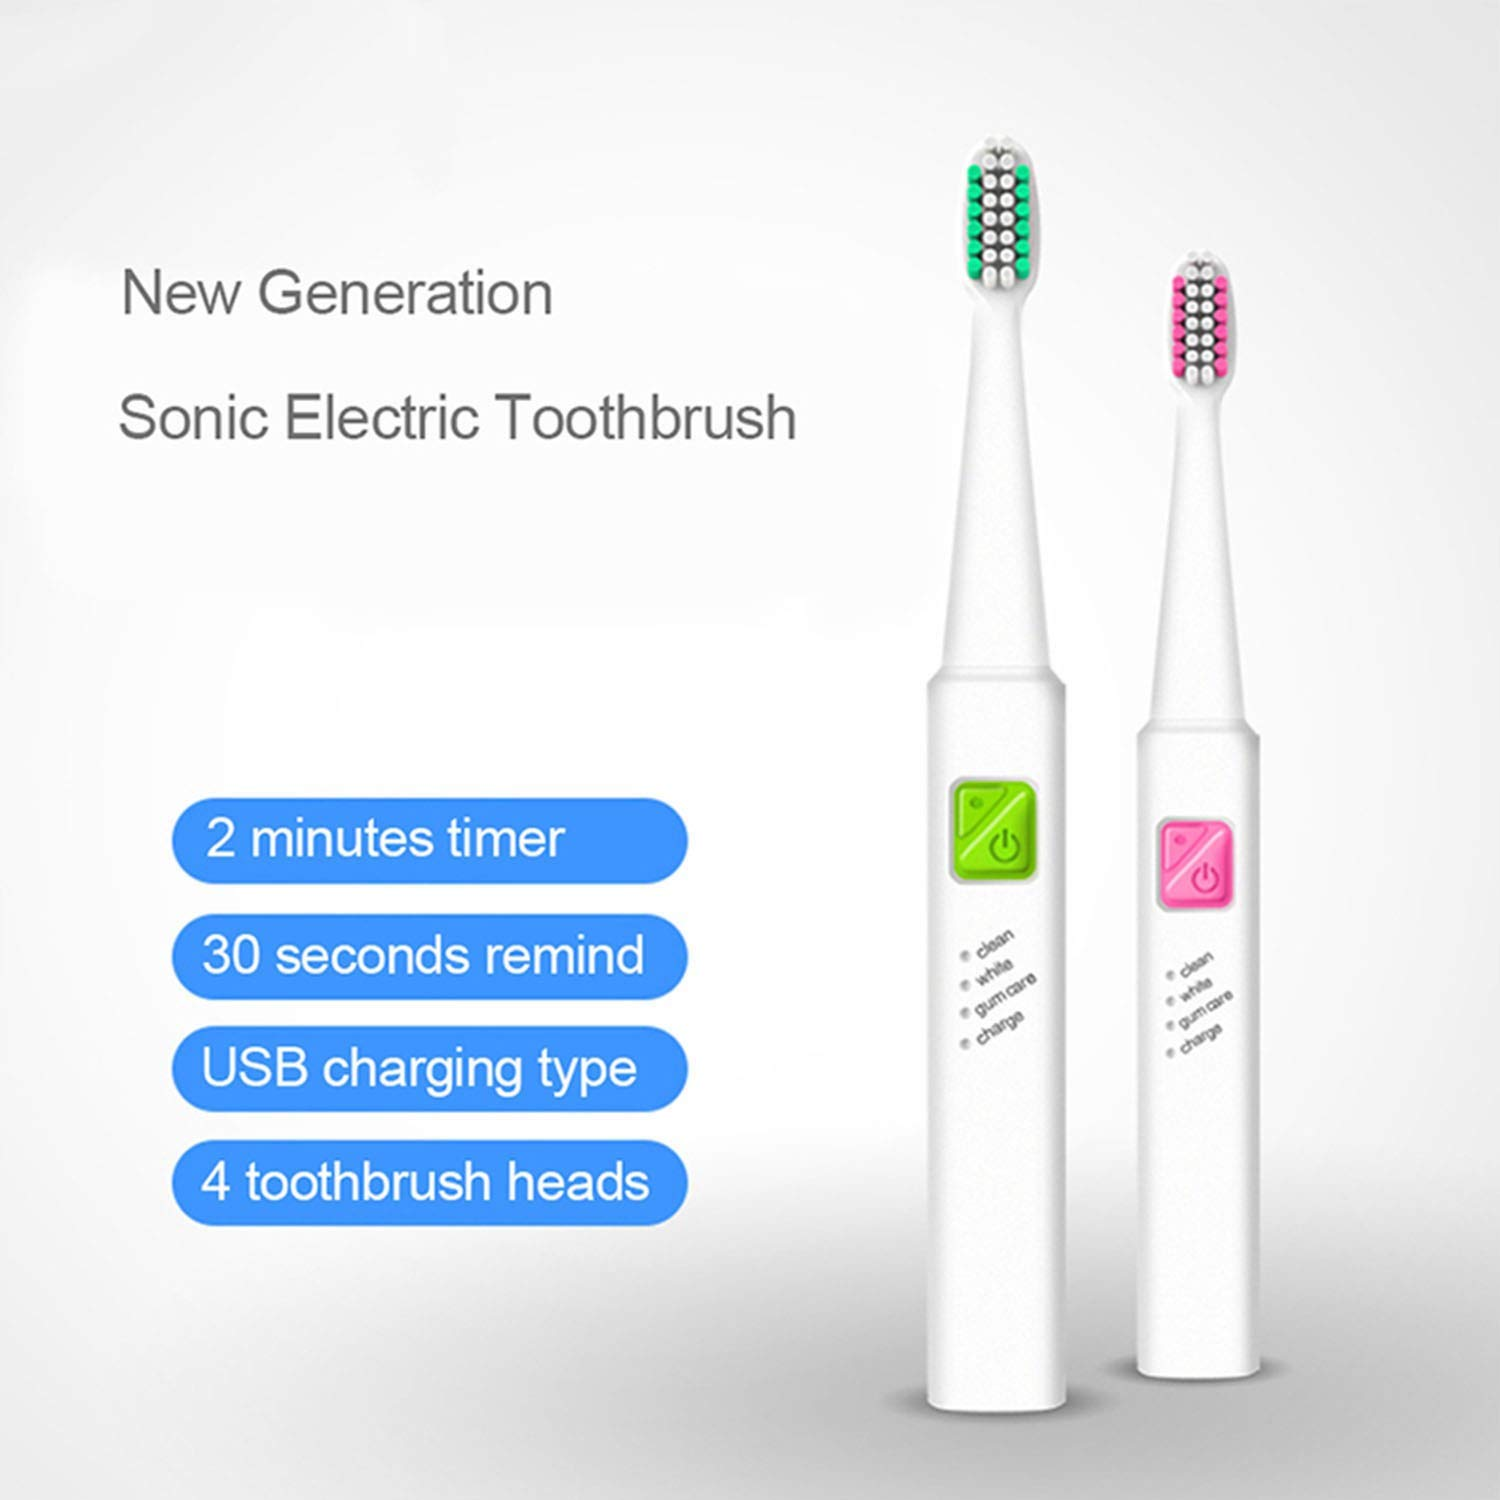 Amazon.com: Christmas Gift Ultrasonic Sonic Electric Toothbrush USB Rechargeable Tooth Brushes With 4 Pcs Replacement Heads,4 heads full purple: Beauty